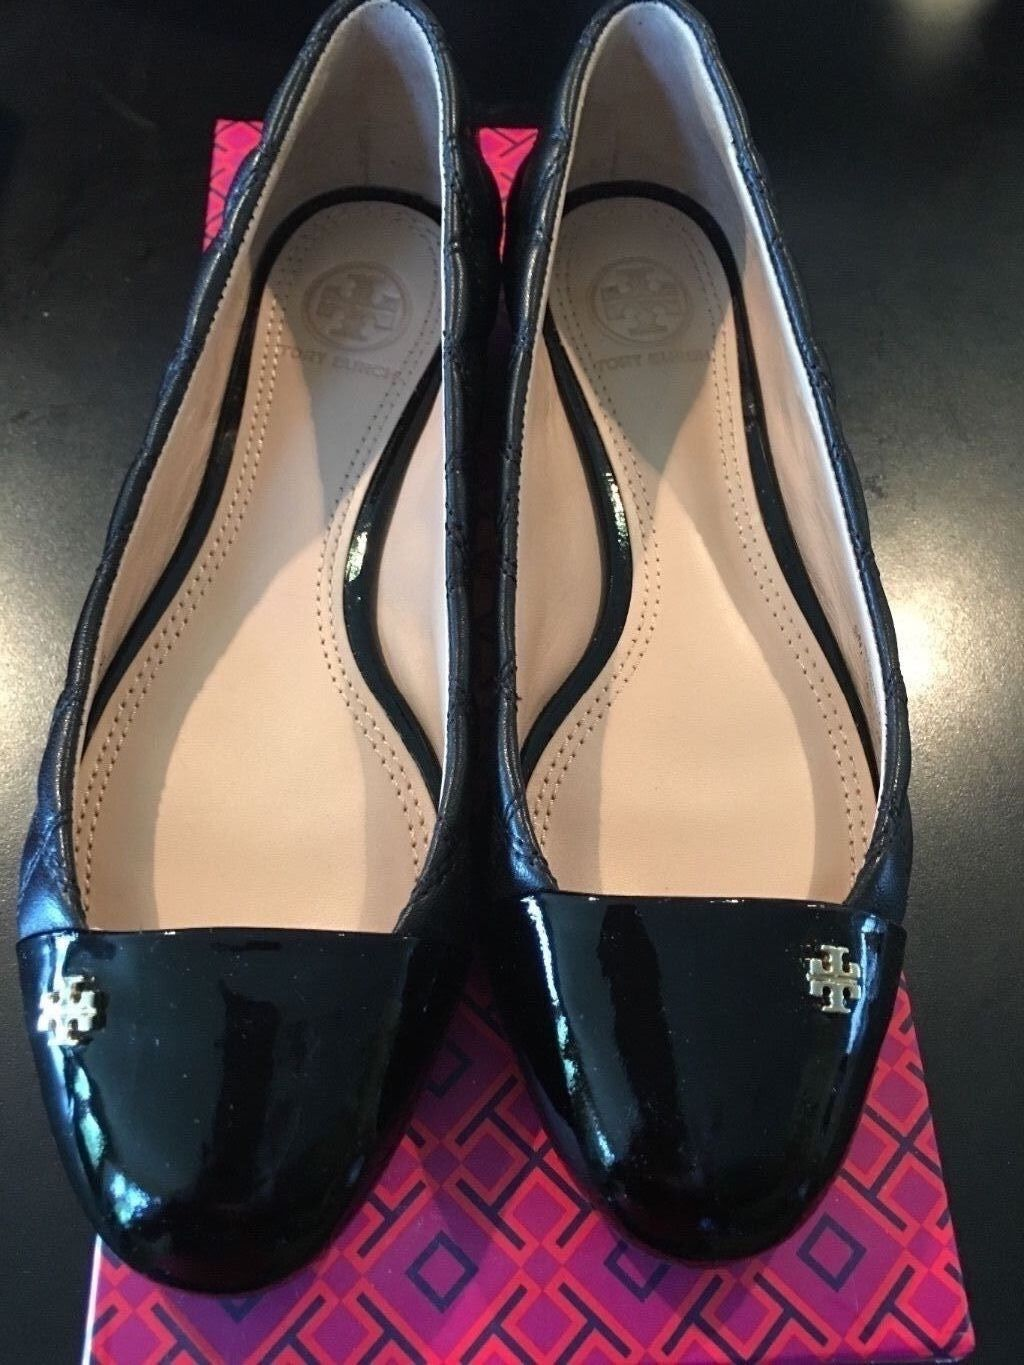 Tory Burch Black Patent Leather Loafers - size 6.5C